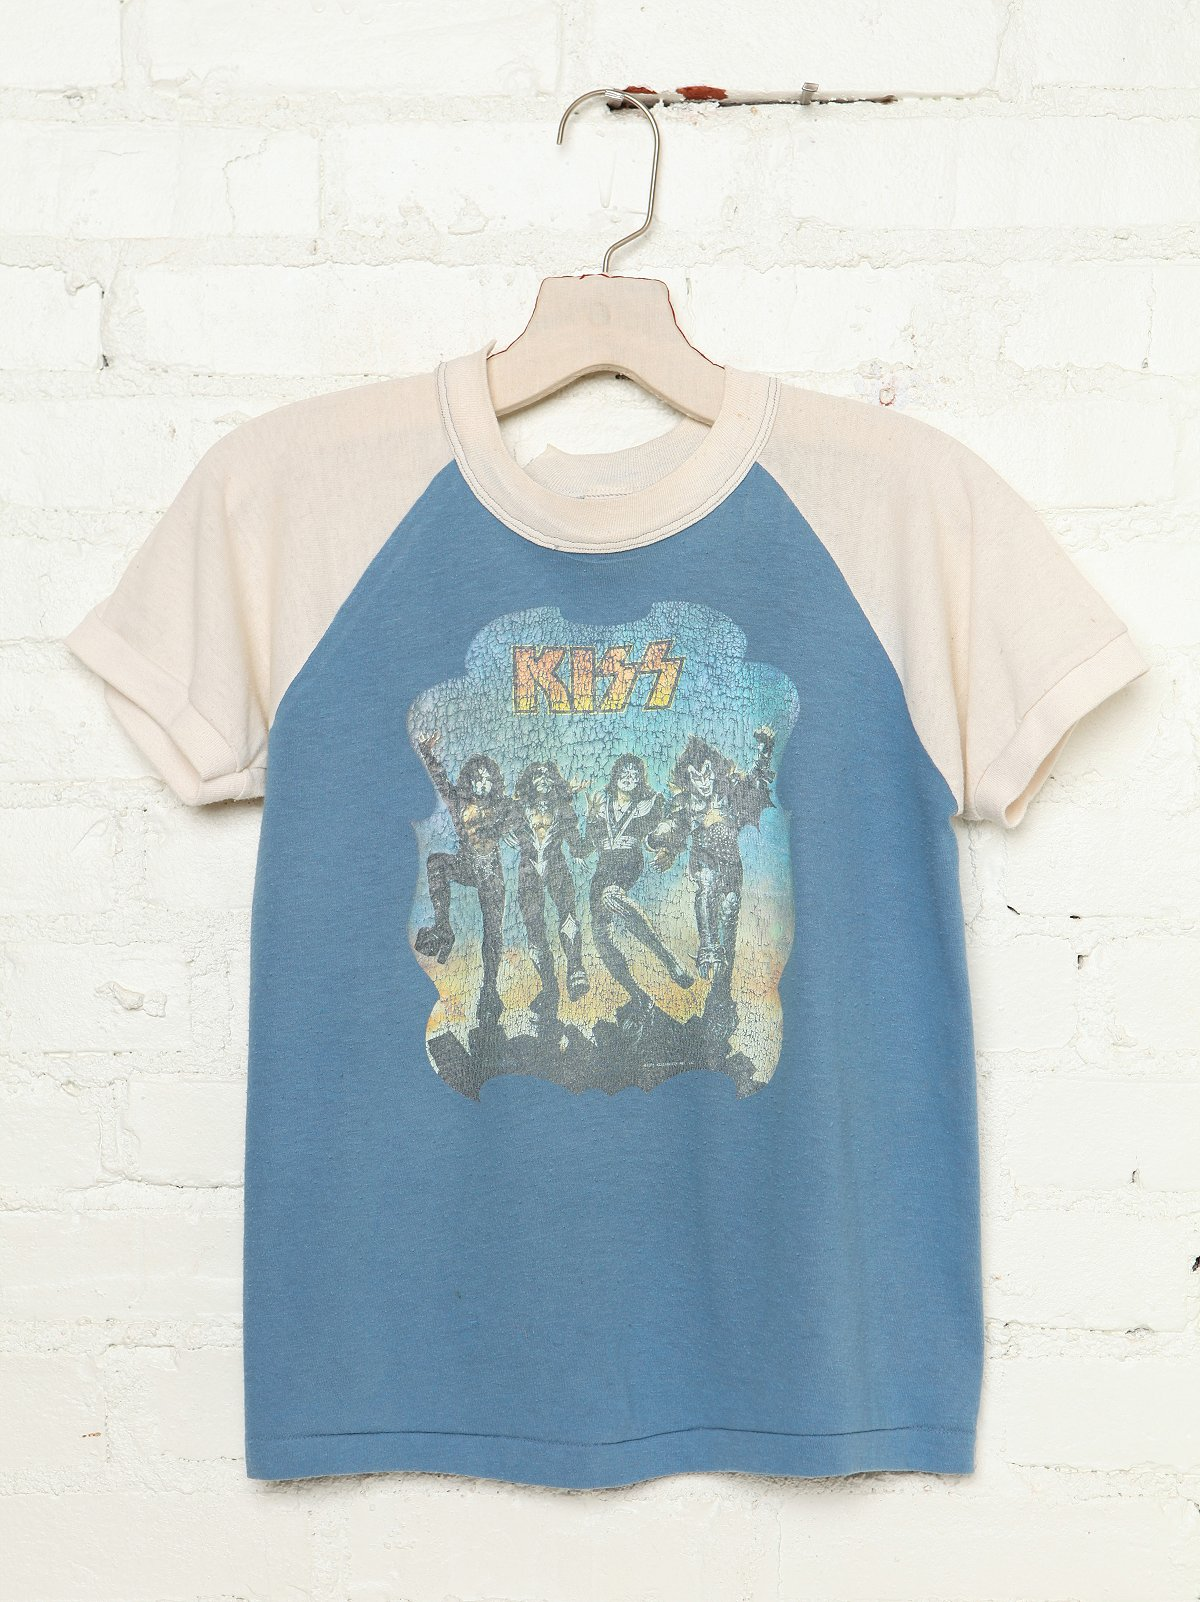 Vintage KISS Graphic Tee